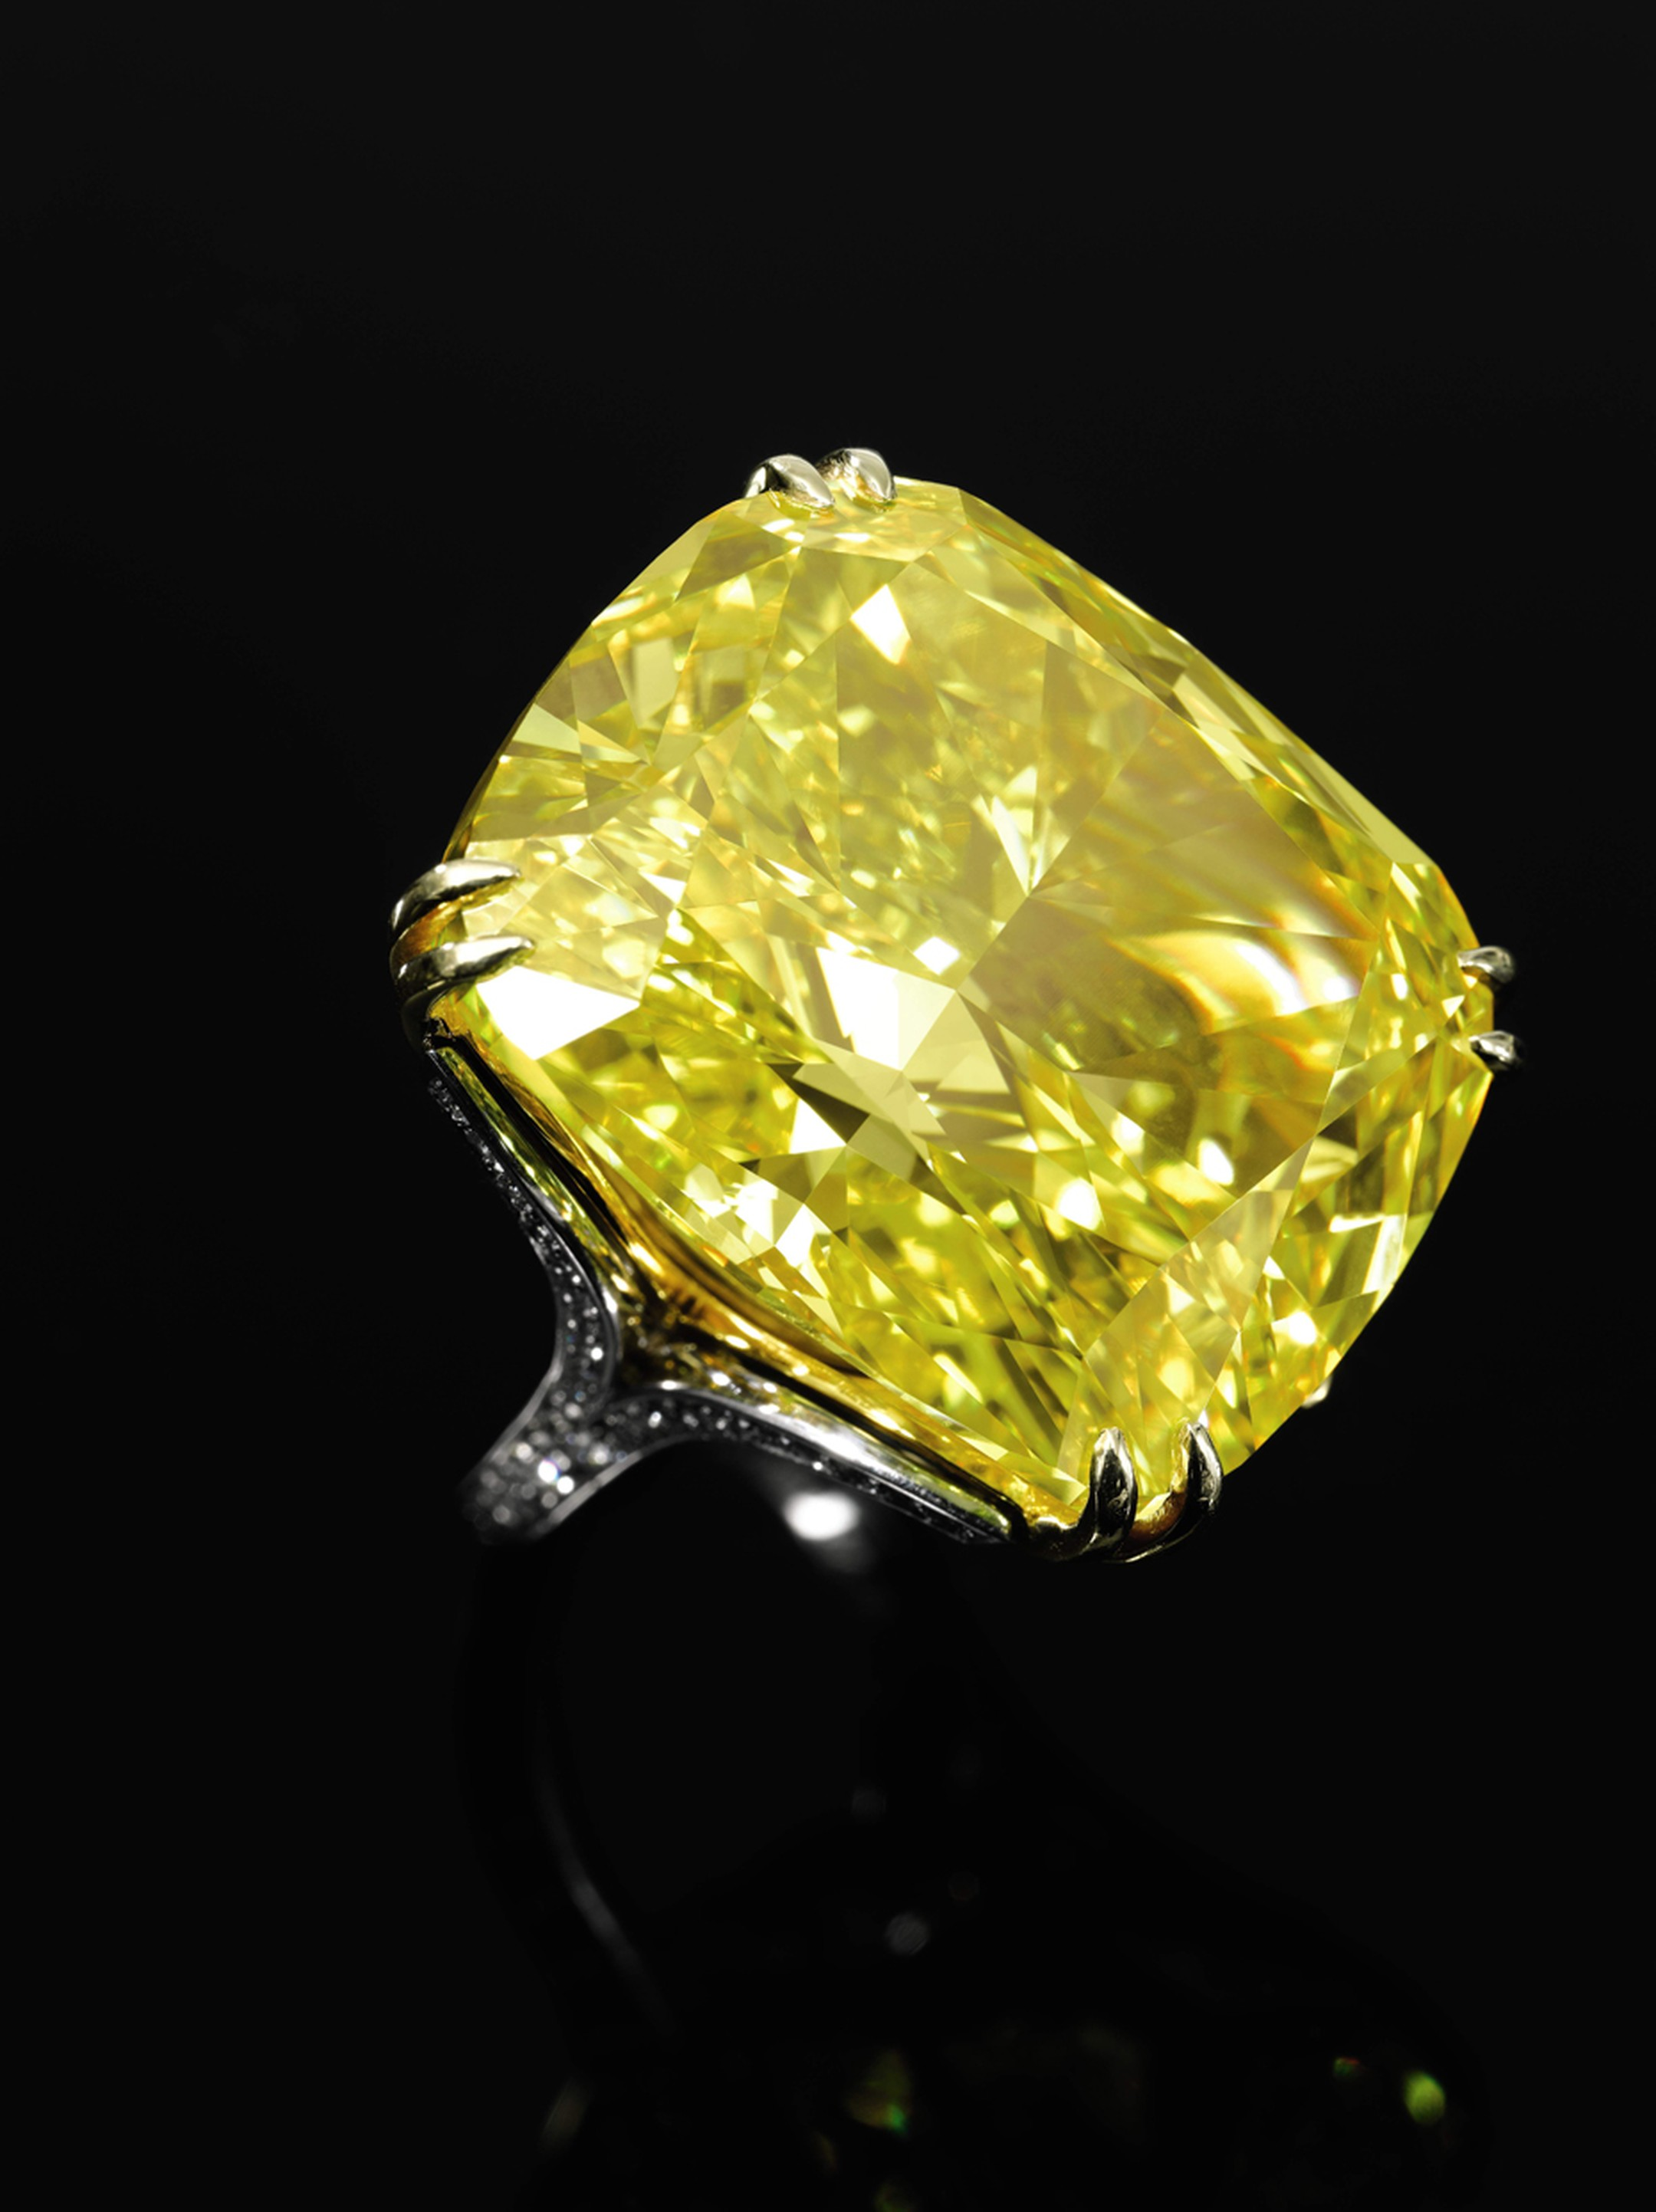 The Graff Vivid Yellow diamond ring is a detachable piece that may also be worn as a pendant. Sold for CHF 14.5million (estimate: CHF 13.4- 22.3million). Image by: Sothebys.